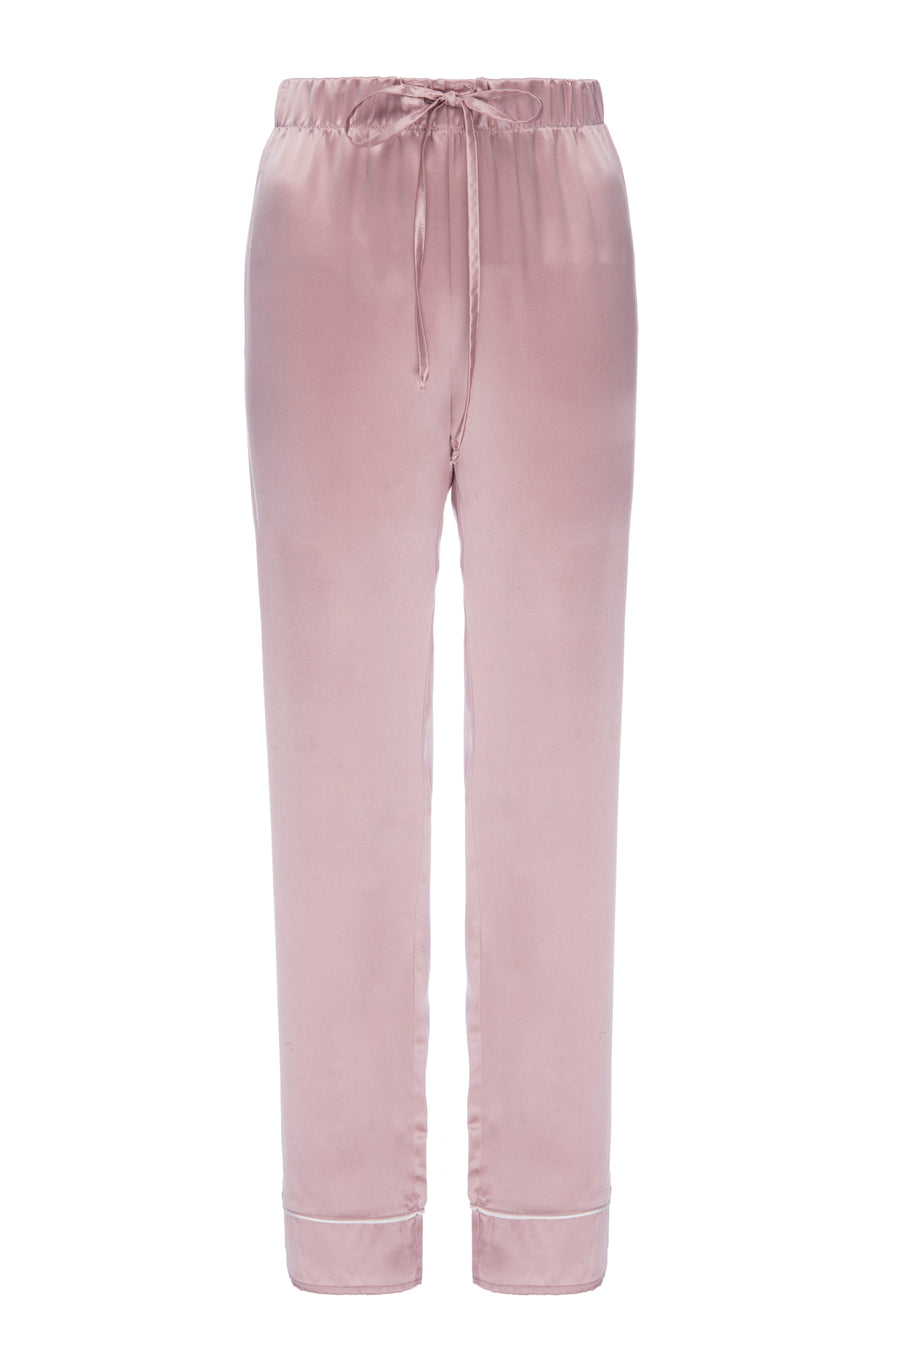 Silk Charmeuse Pants: Rose Gold